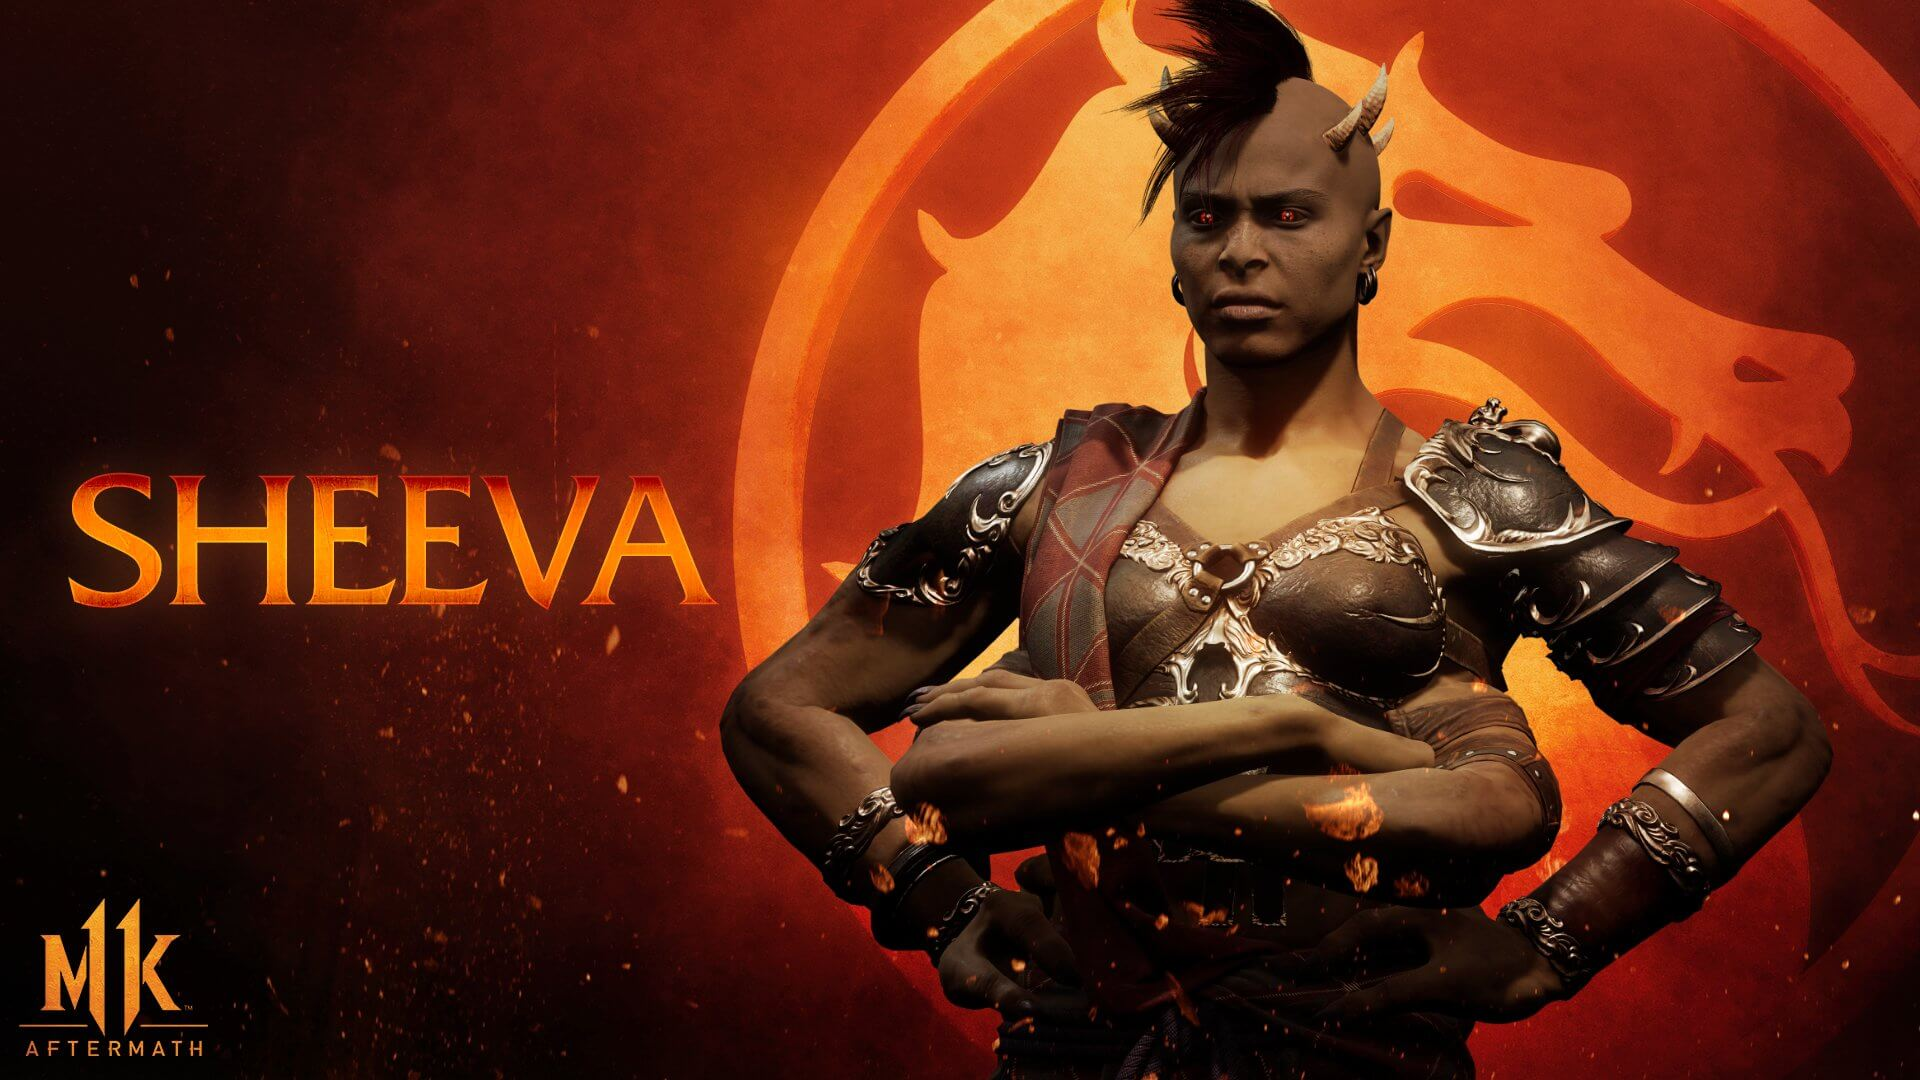 The first major tournament in Mortal Kombat 2021 began with a scandal